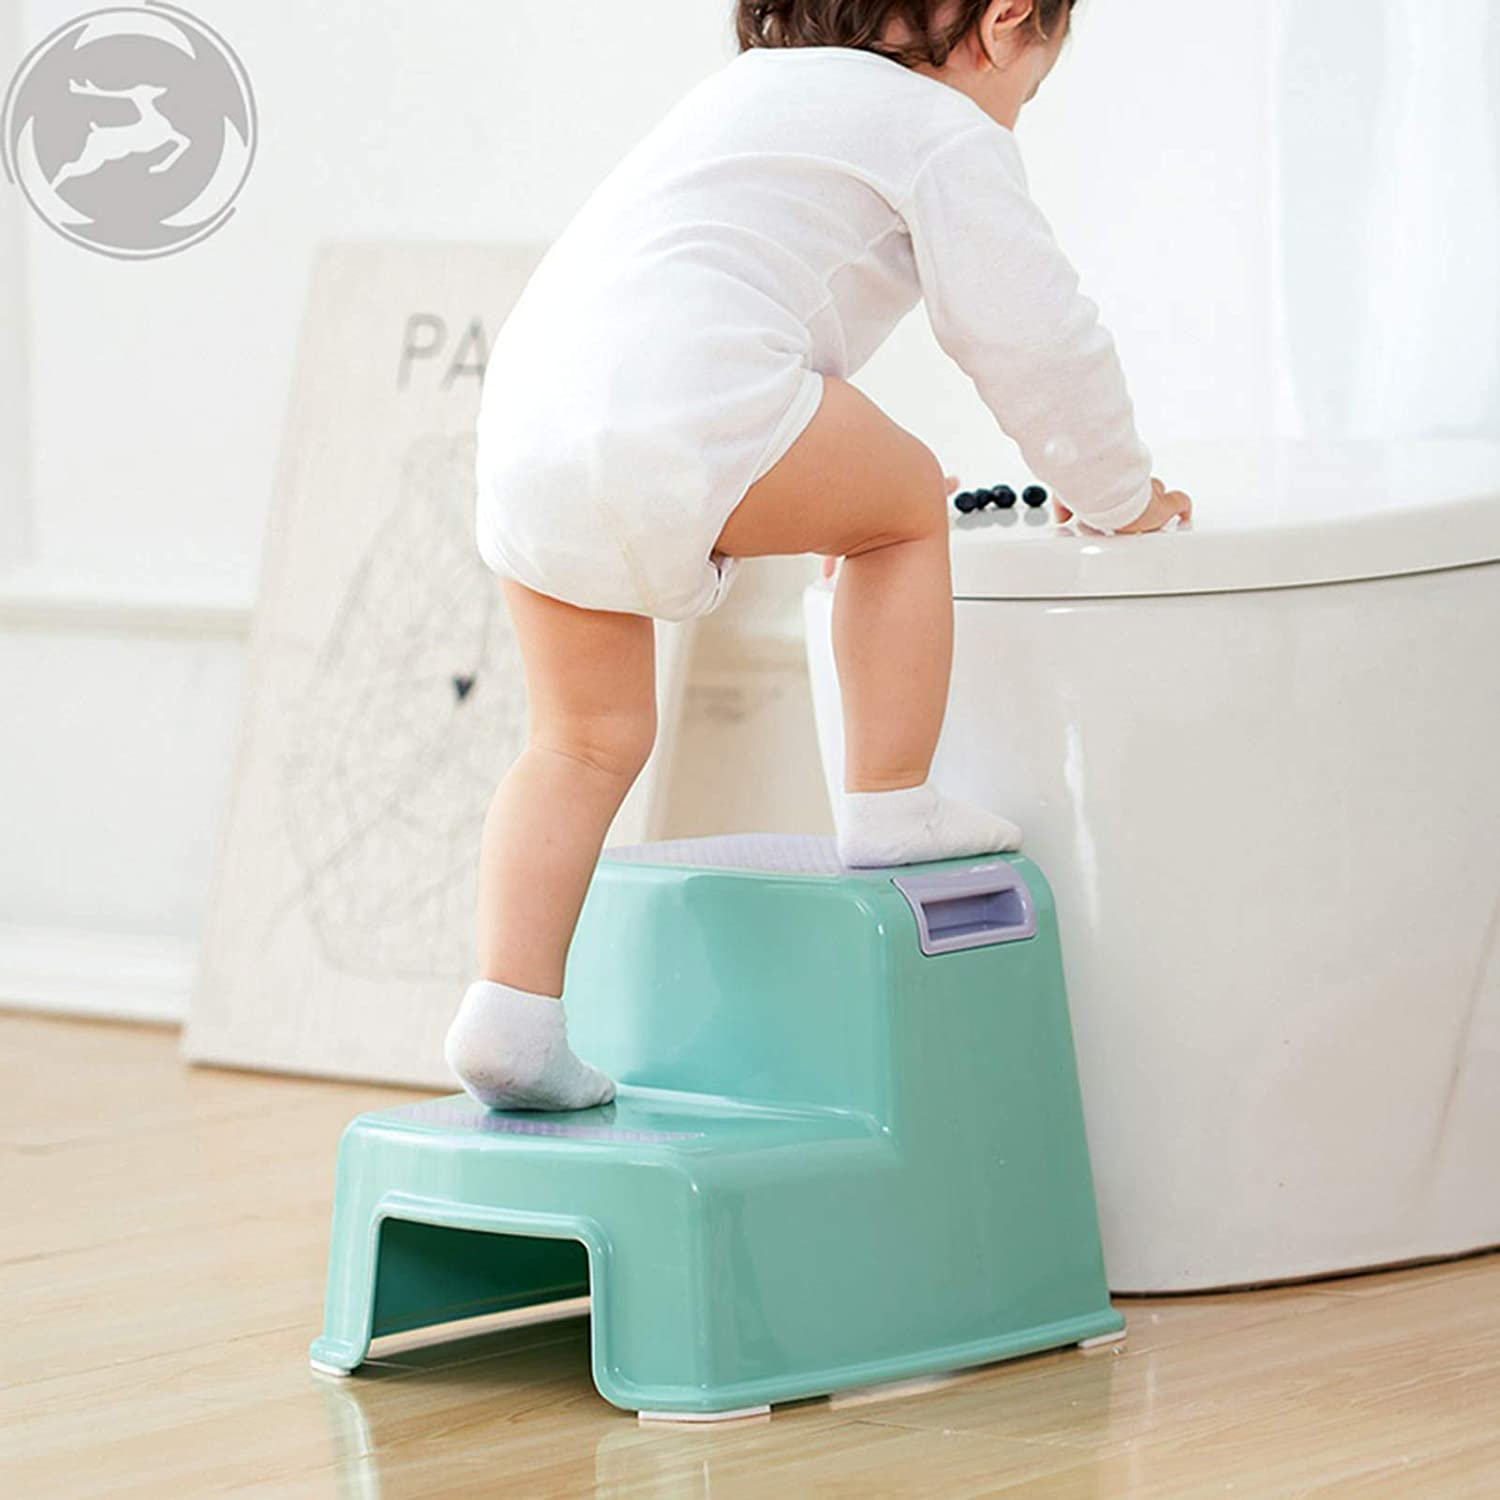 YIVEKO 2 Step Stool for Kids Bathroom and Kitchen Step Stool-Slip Resistant Soft Grip for Safety Stackable Dual Height Wide Two Steps -Toddler Step Stool for Toilet Potty Training 1 Pack